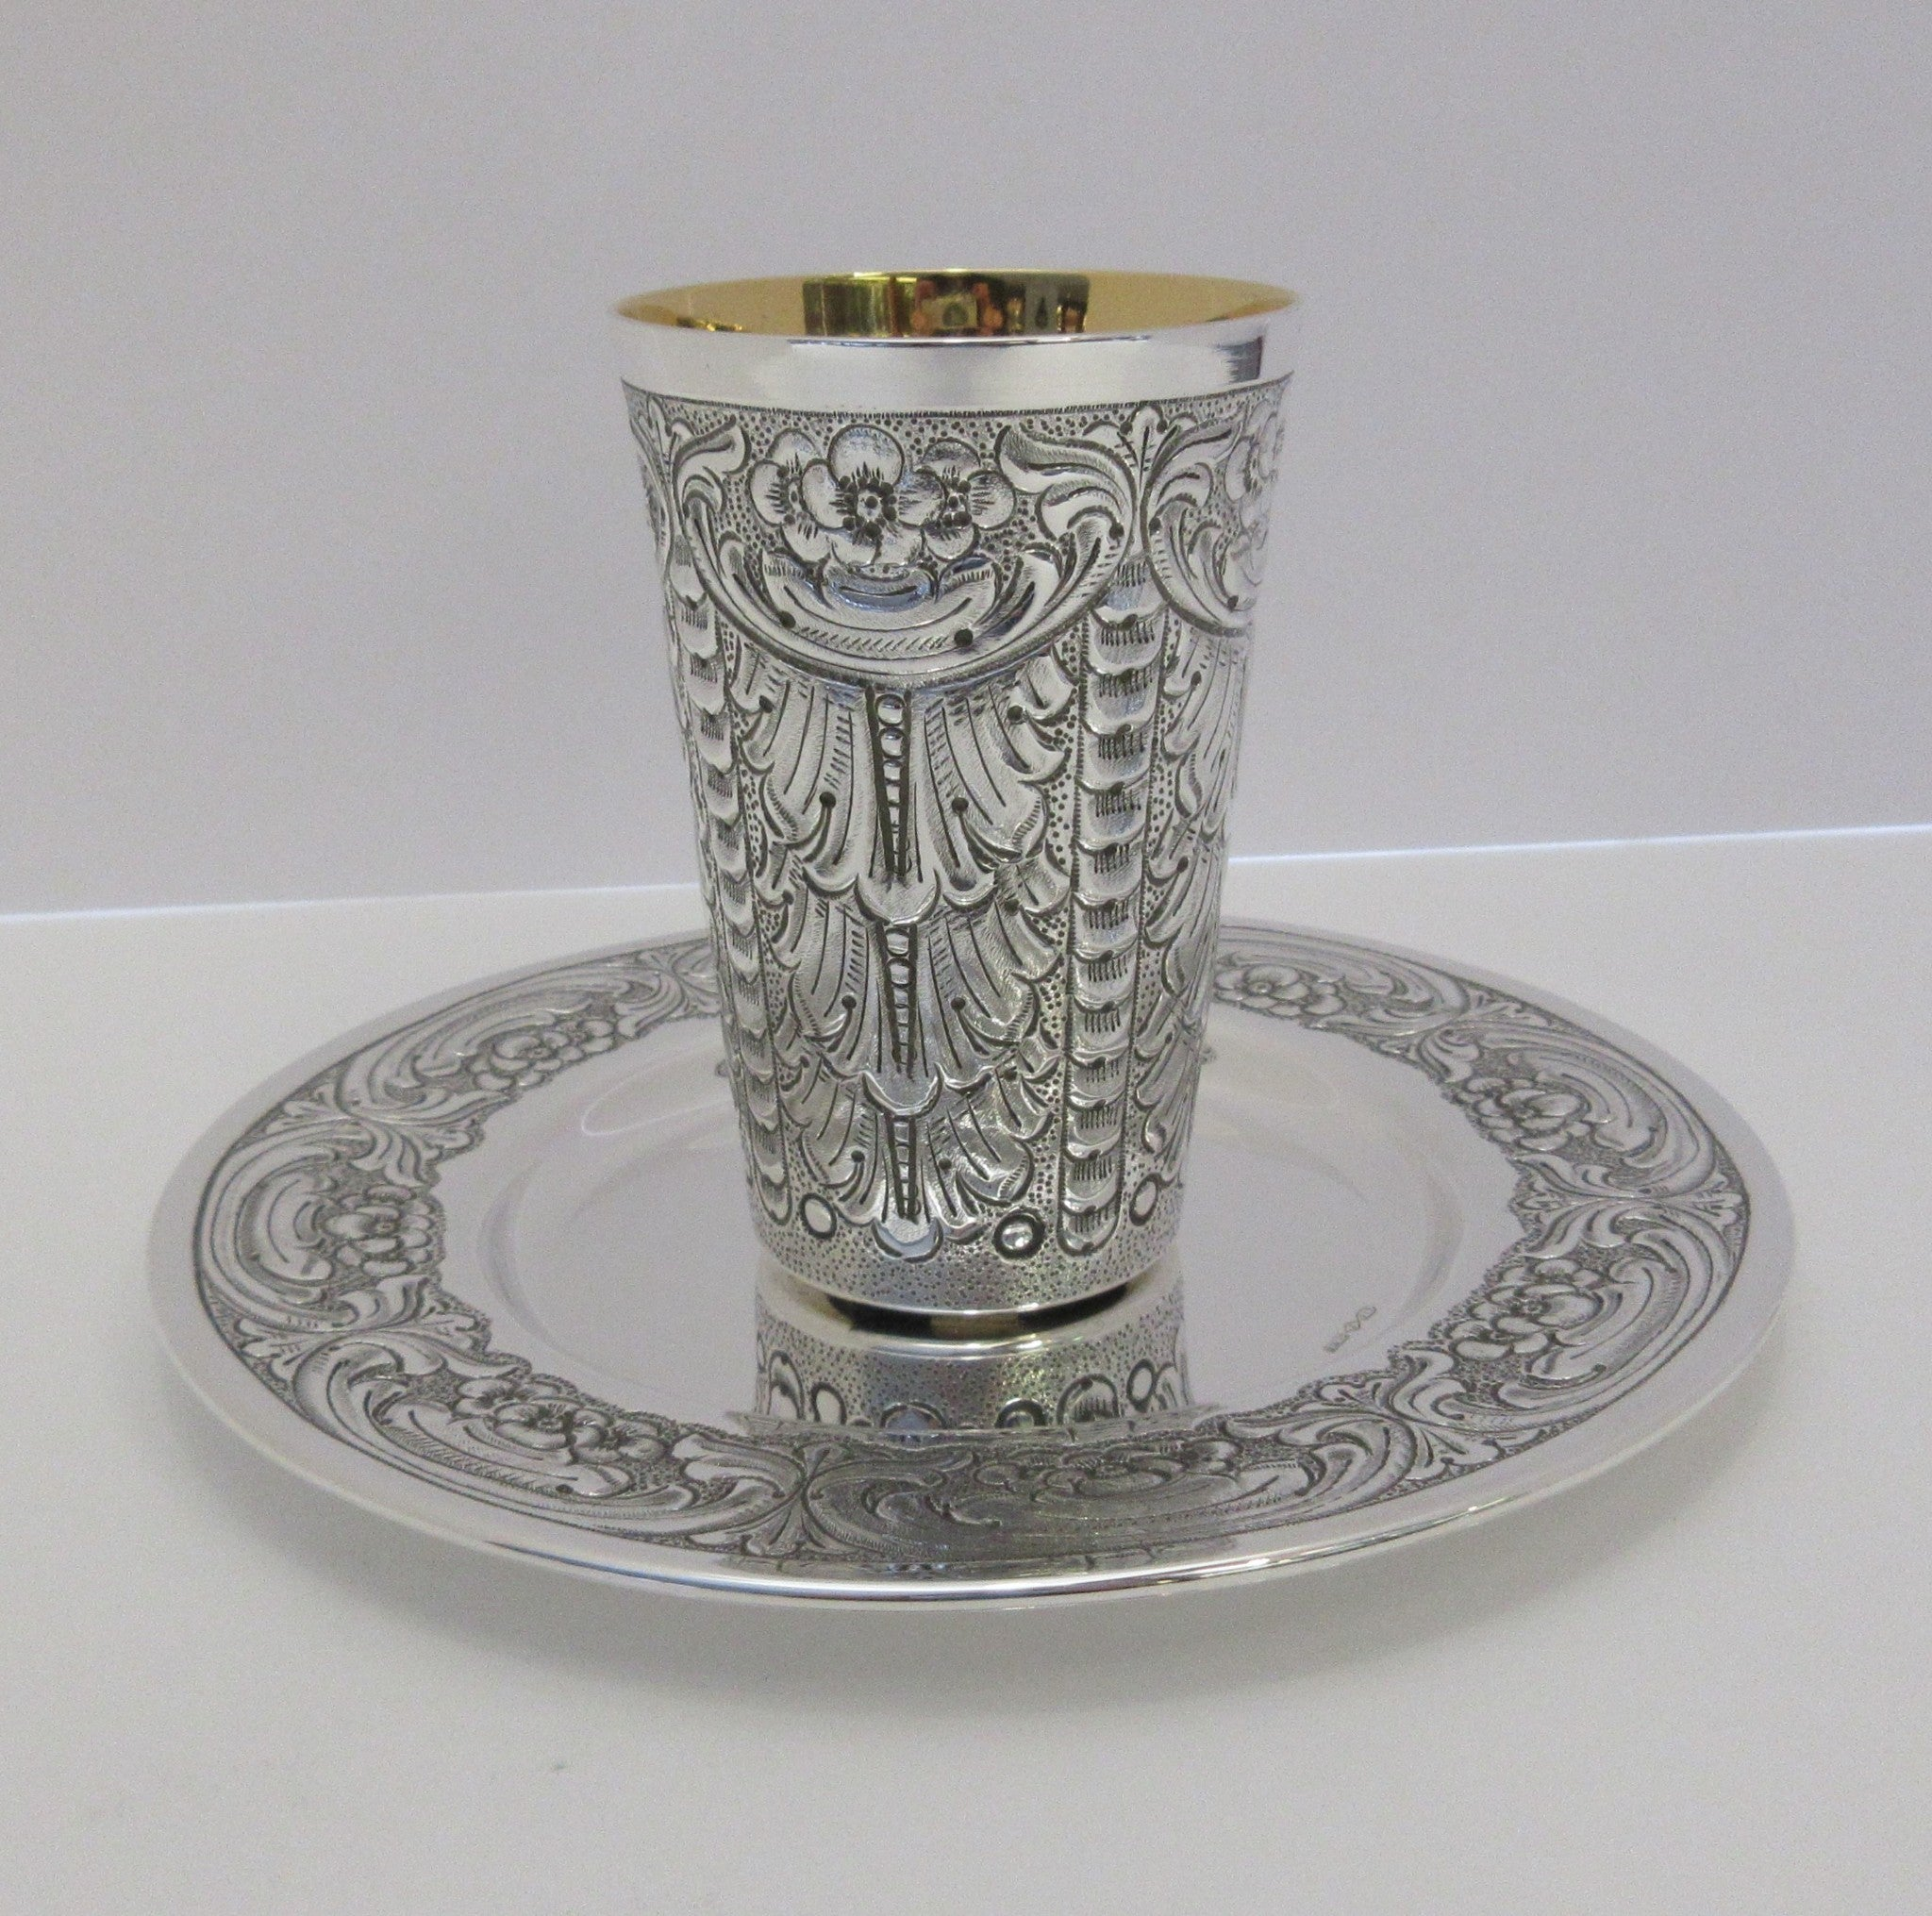 ITALY 925 STERLING SILVER HANDMADE LEAF FLOWER ORNATE MATTE & SHINY CUP & TRAY